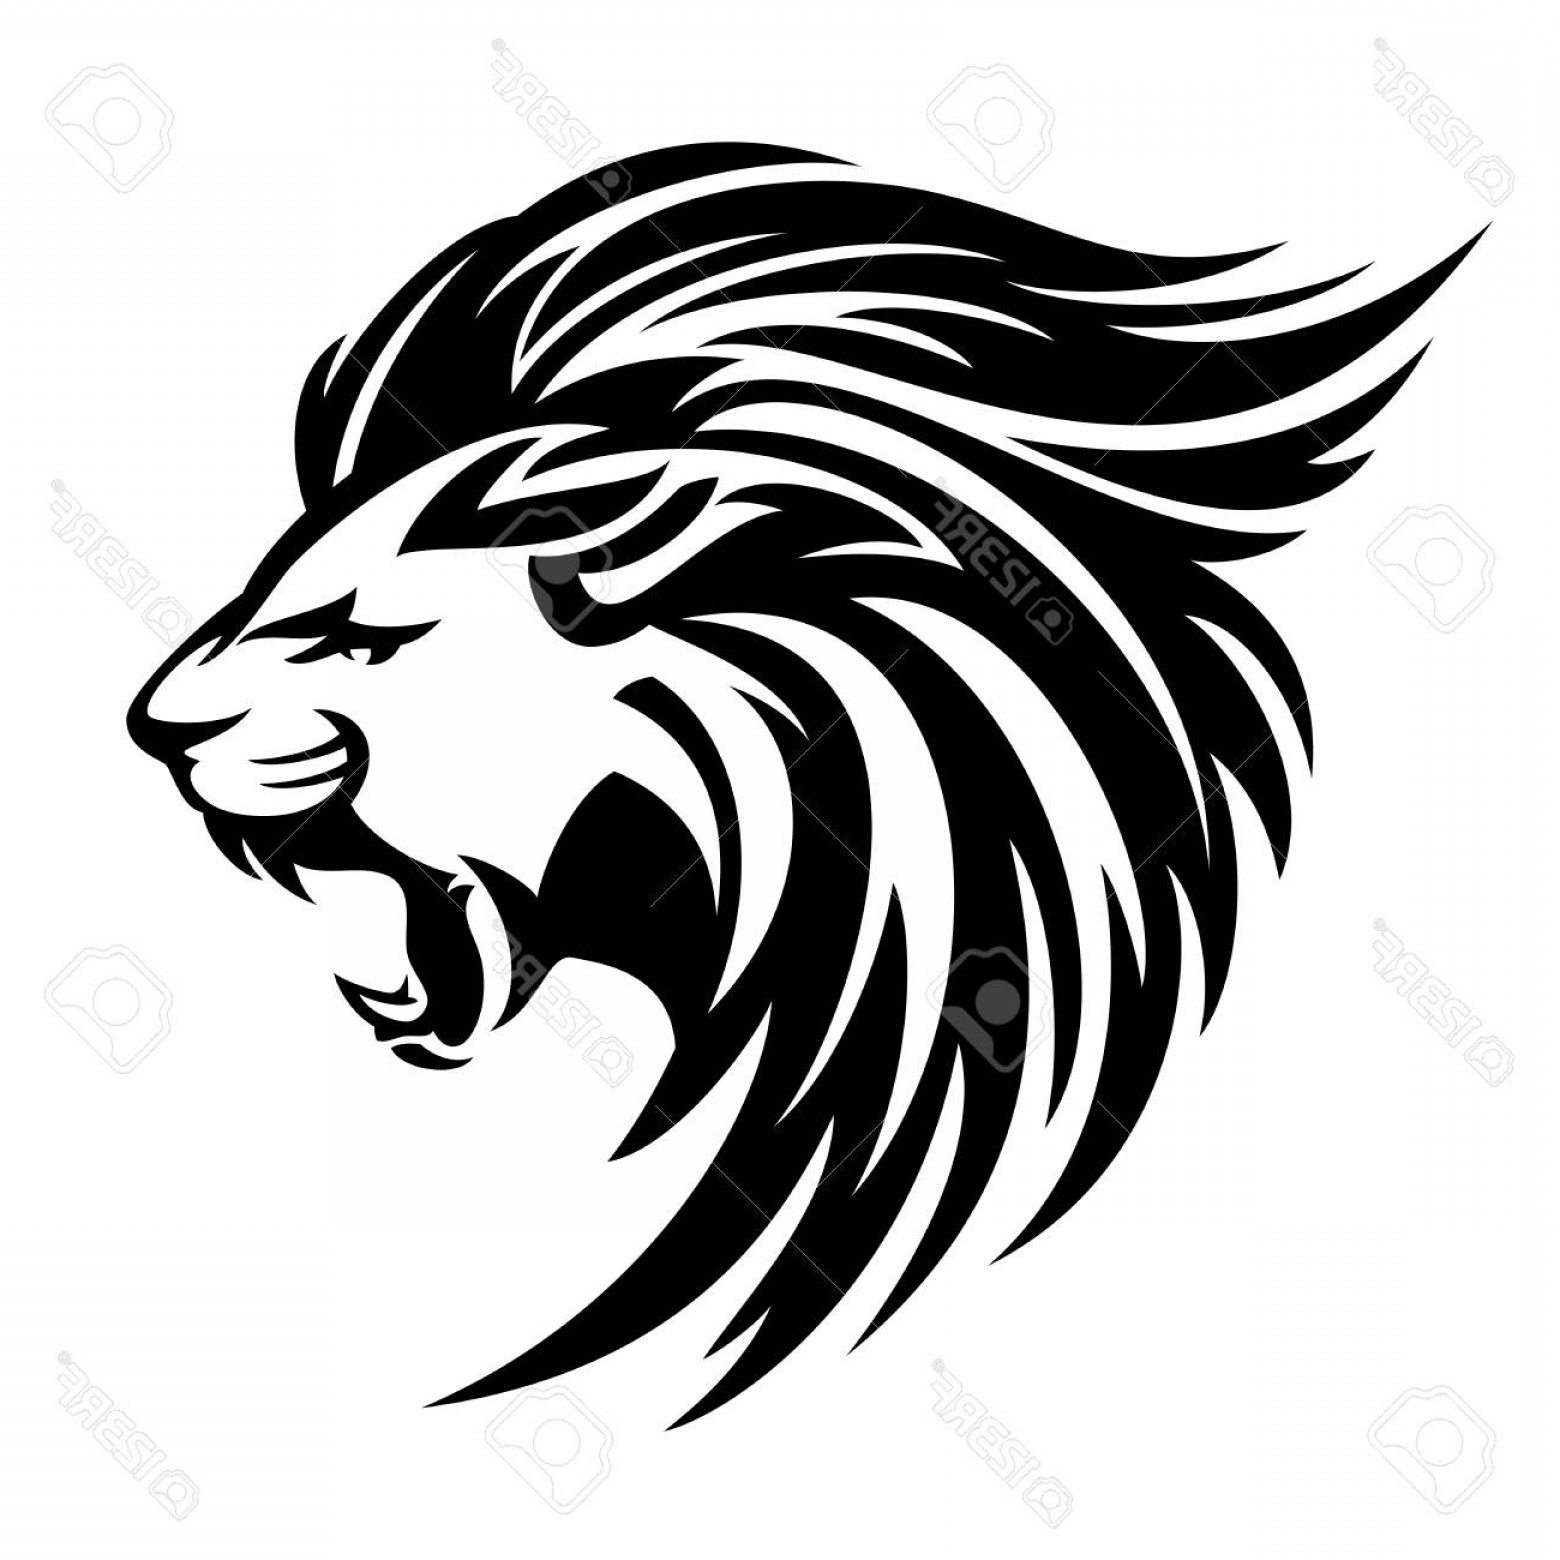 Photostock Vector Roaring Lion Profile Portrait Side View.